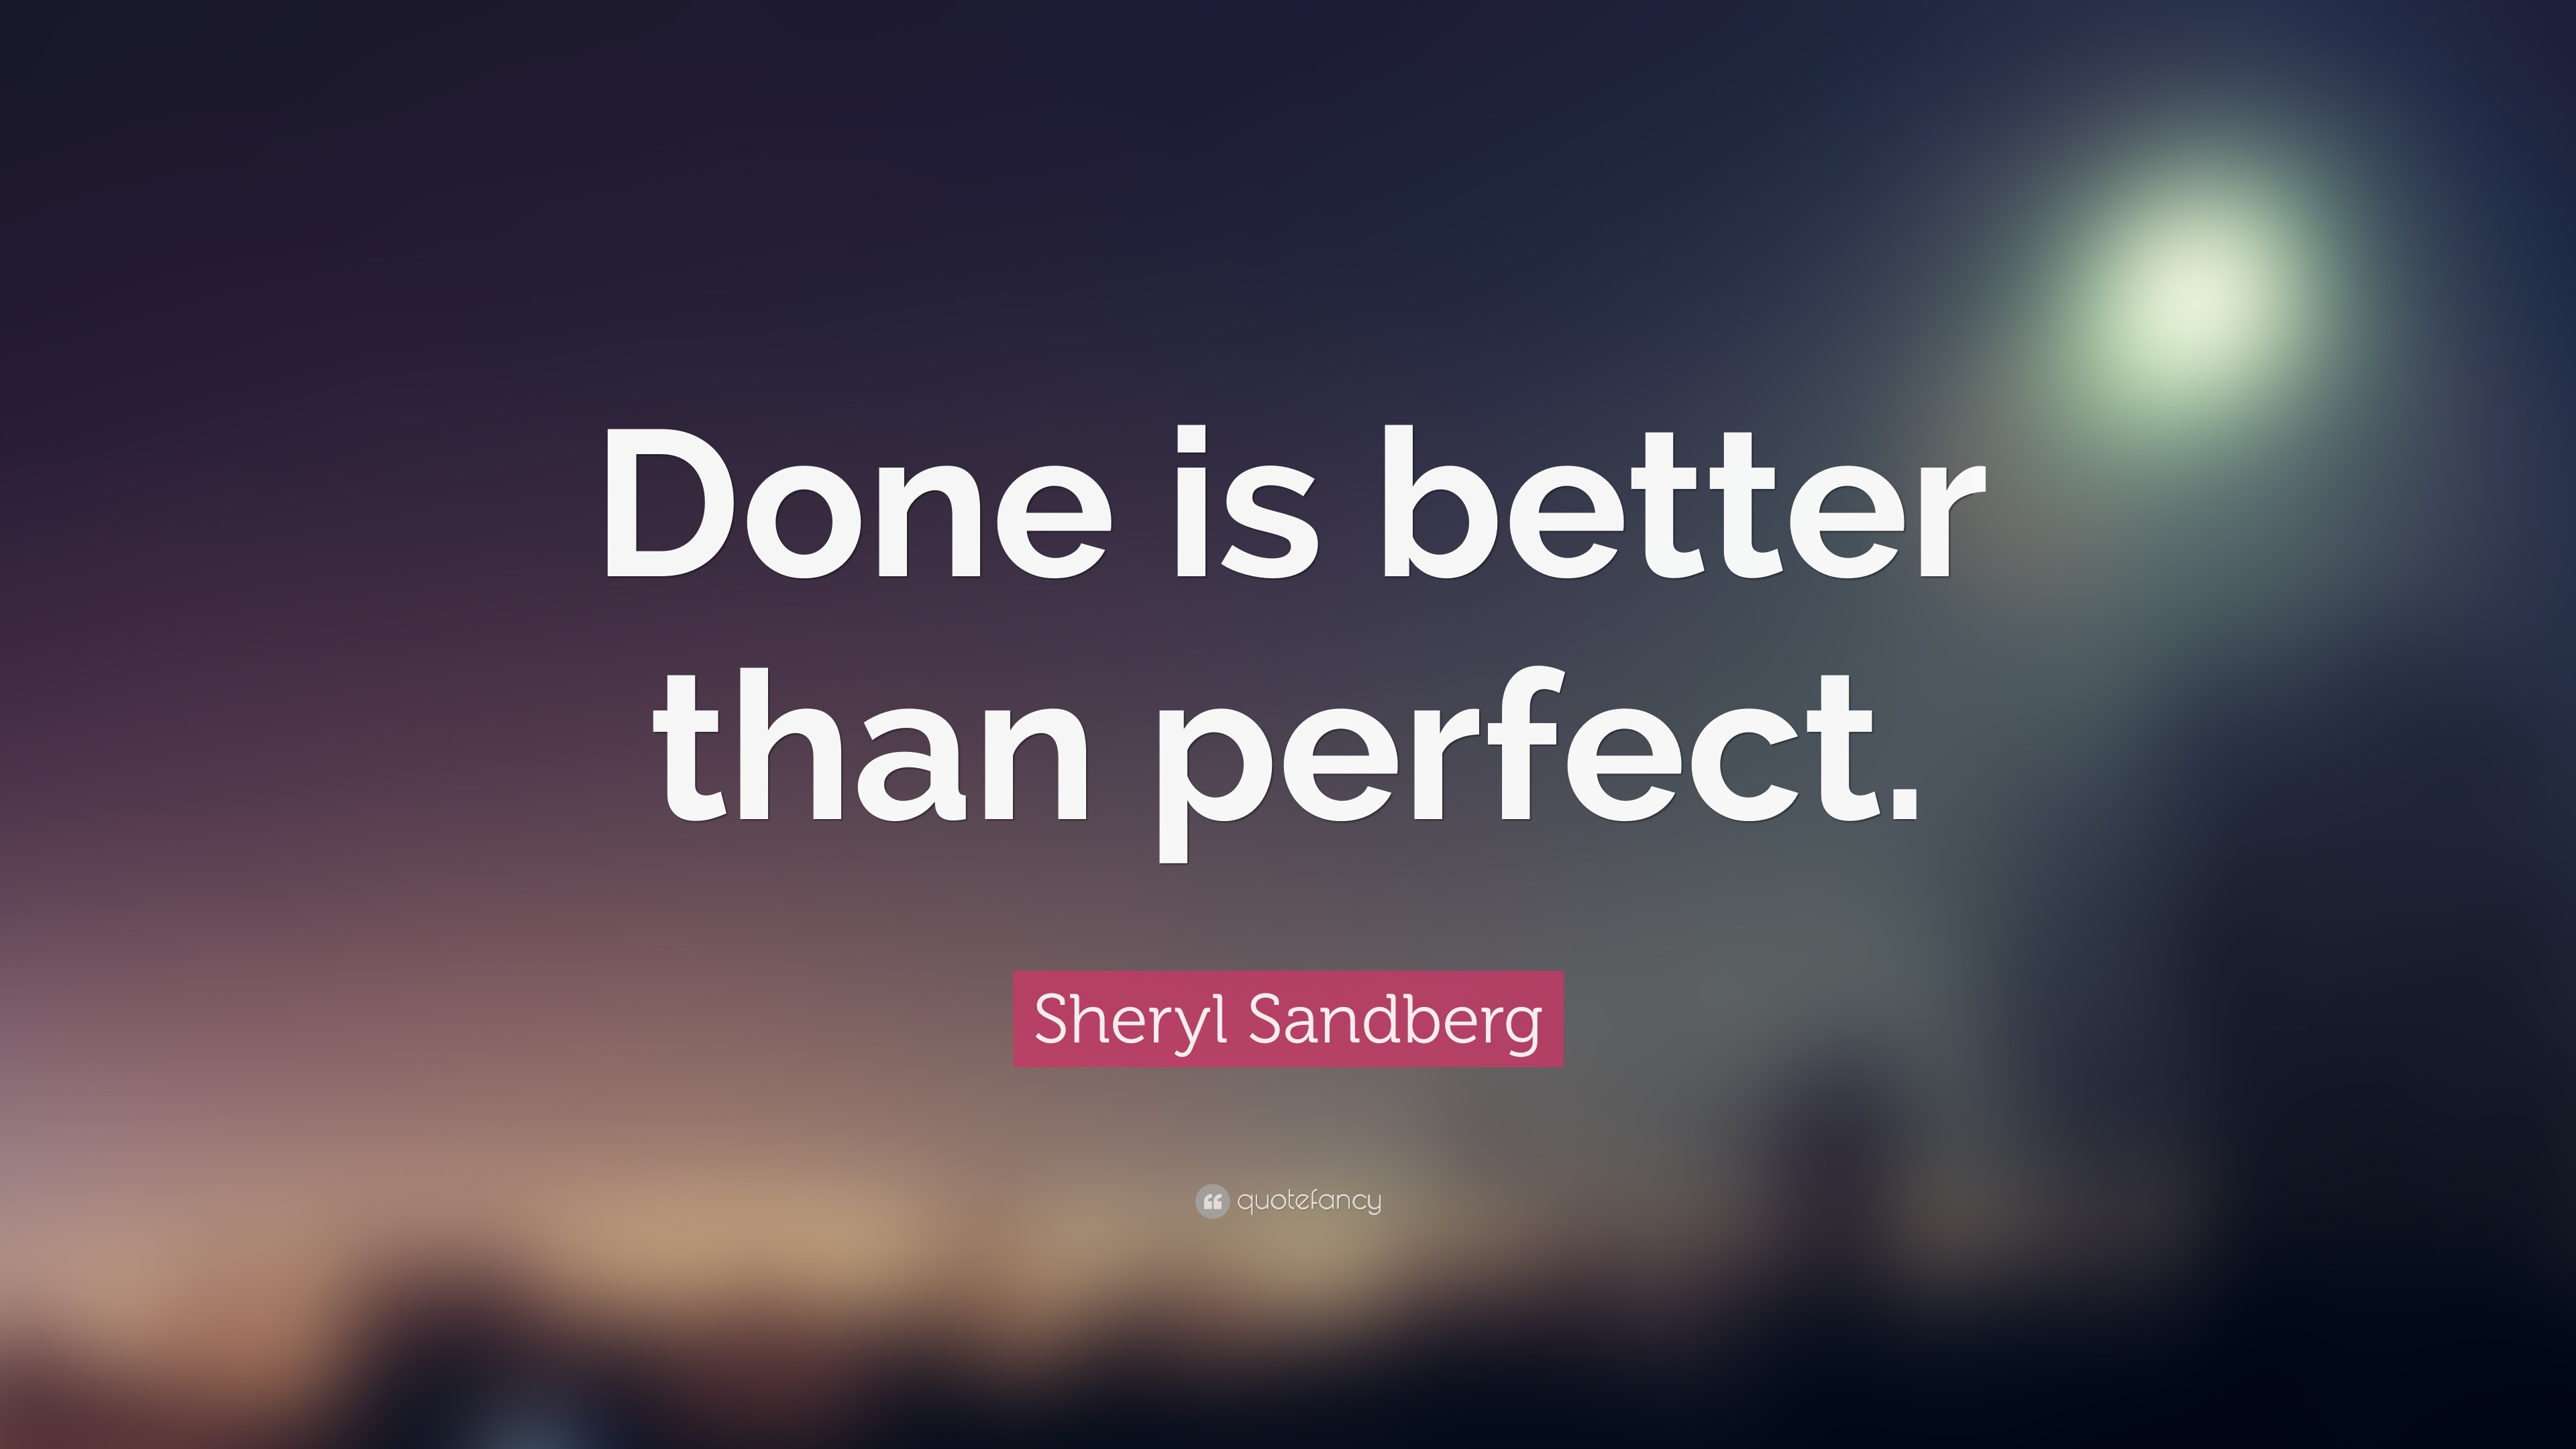 sheryl sandberg quote done is better than perfect 23 wallpapers quotefancy. Black Bedroom Furniture Sets. Home Design Ideas